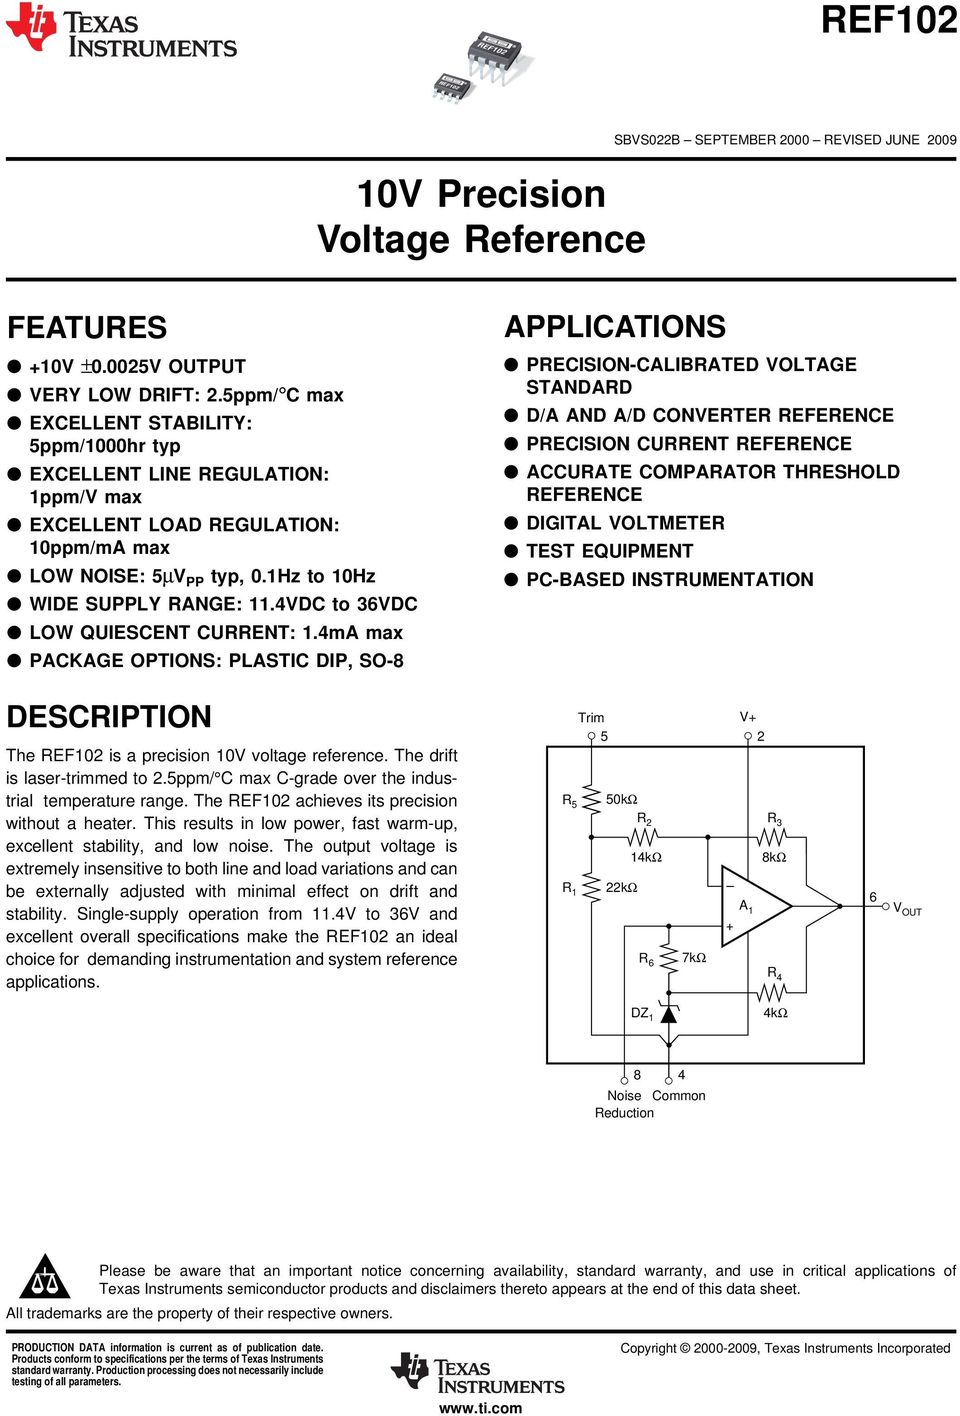 10v Precision Voltage Reference Pdf Gain 2 Of Amplifier Circuit Ina105 Amplifiercircuit Vdc To 3vdc Low Quiescent Current 1